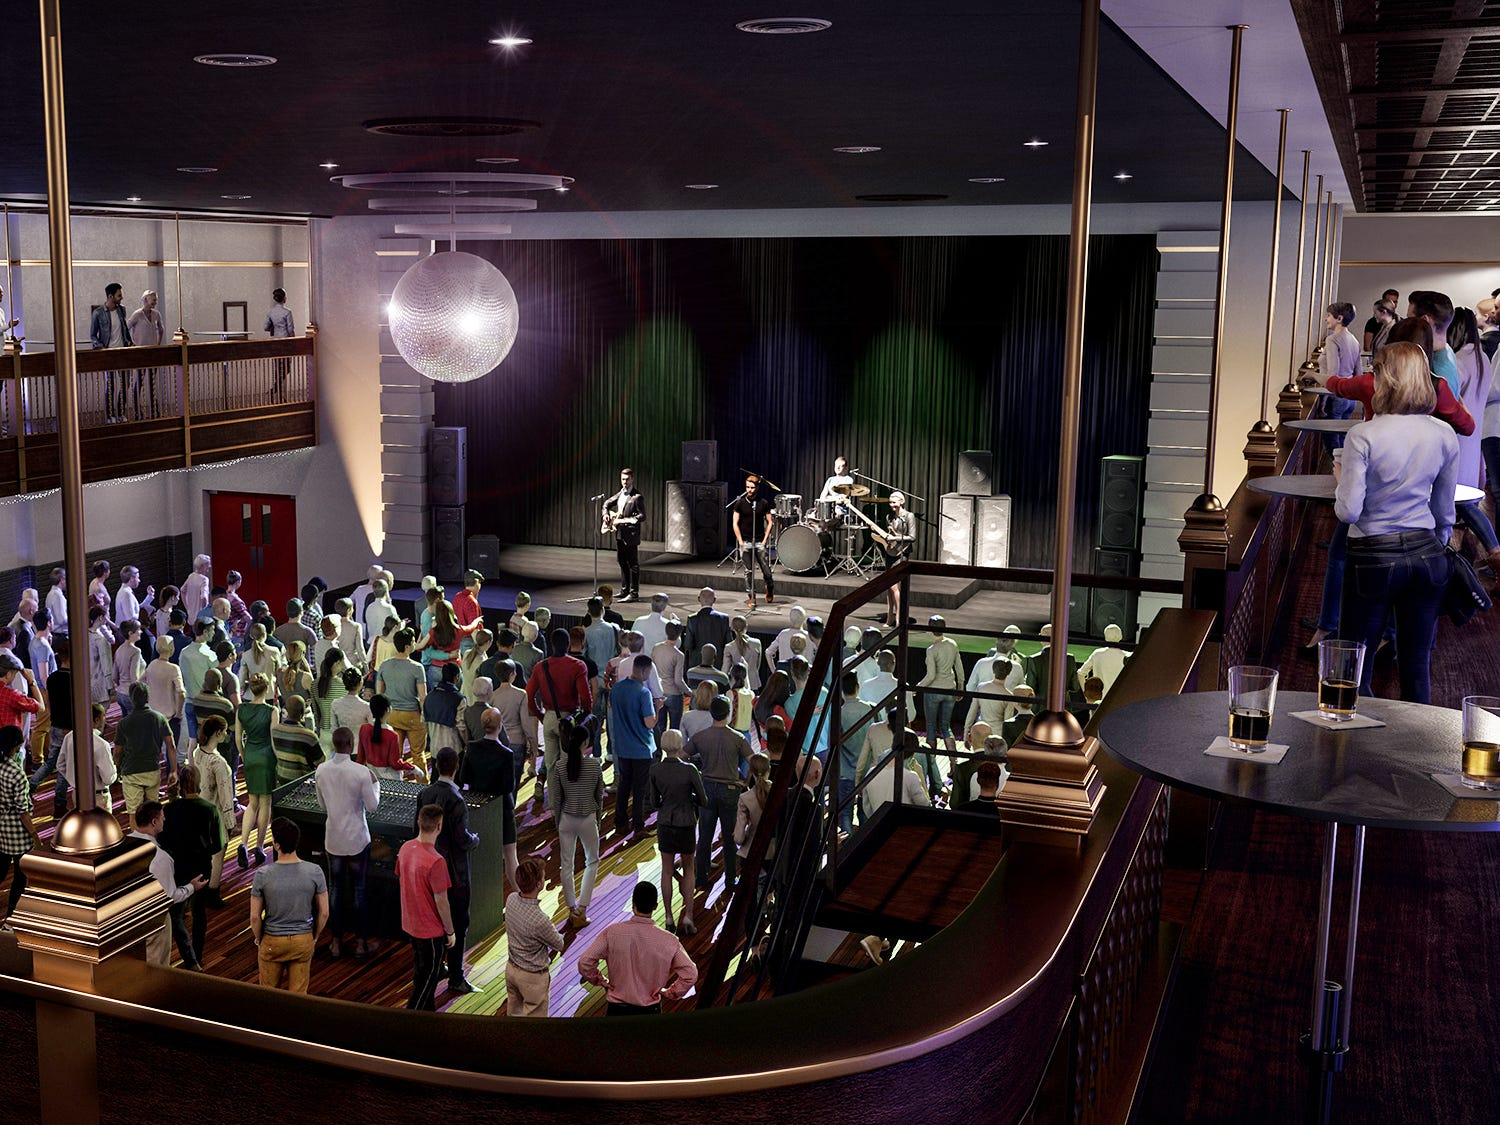 In this artist rendering, the main room inside the former Cobblestones building is a rock club with a stage built at one end.